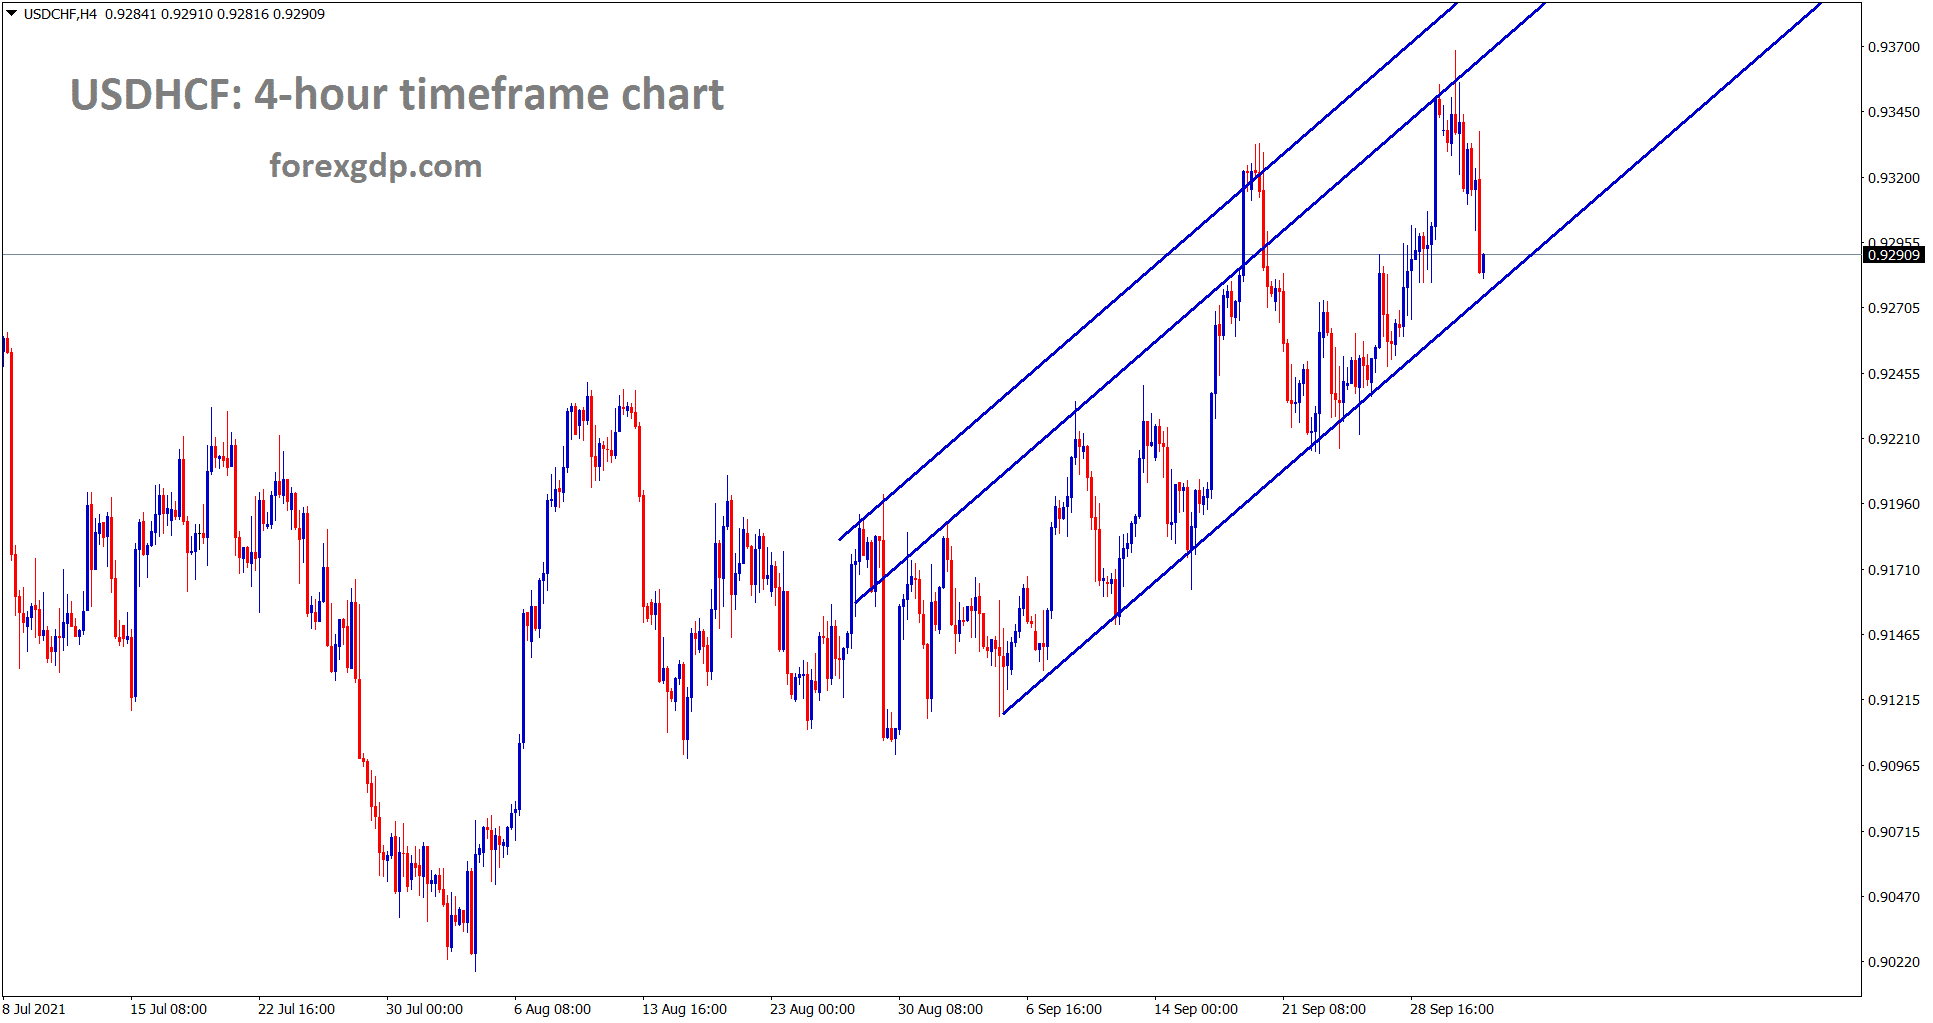 USDCHF is moving in an uptrend forming higher highs higher lows